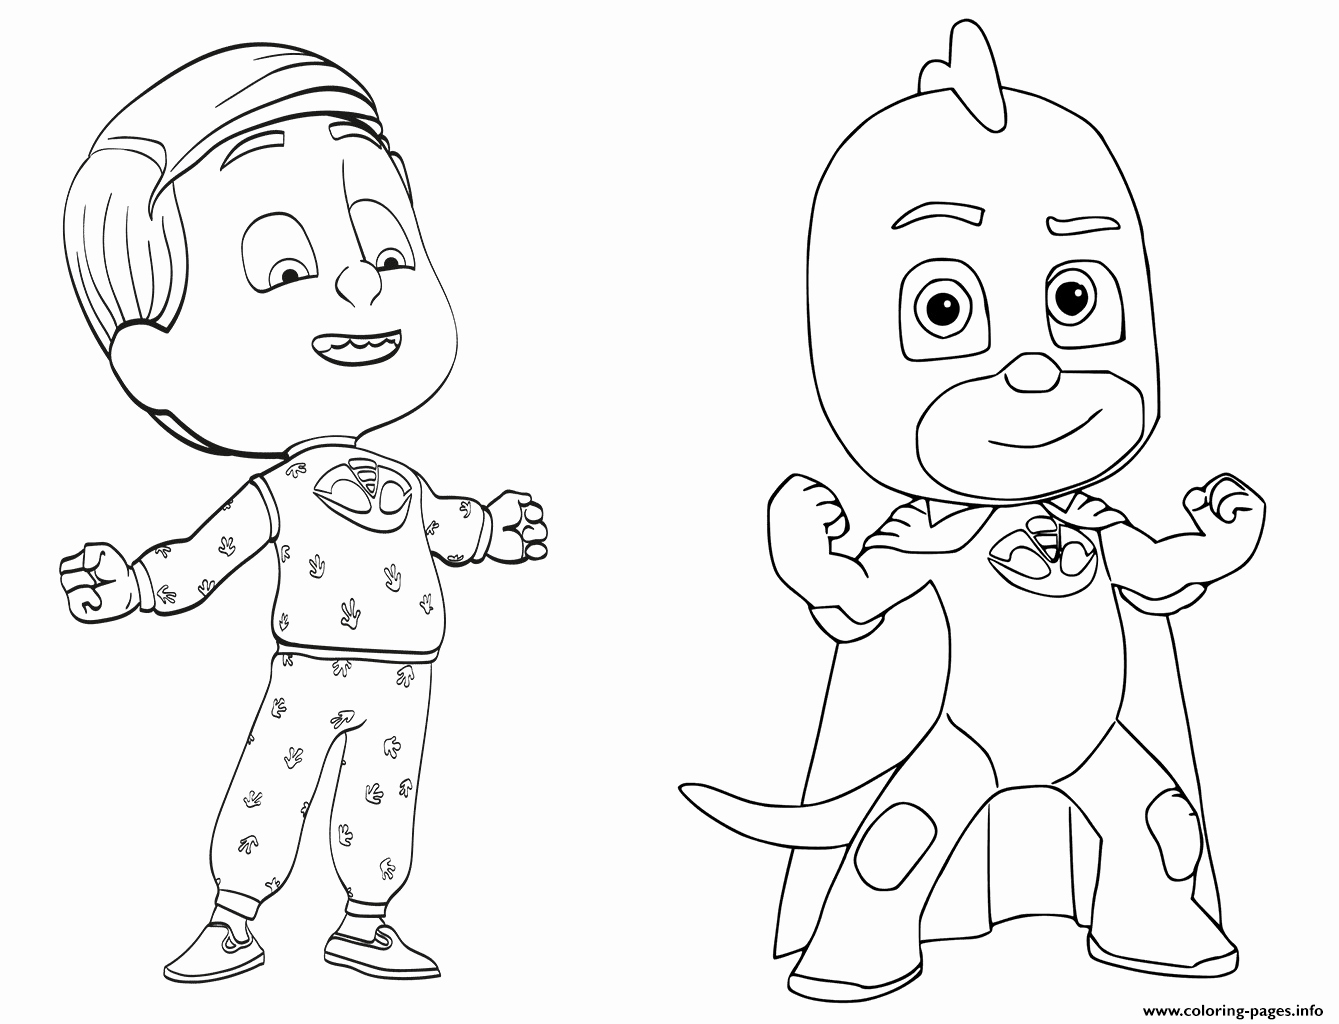 Pj Masks Free Coloring Pages